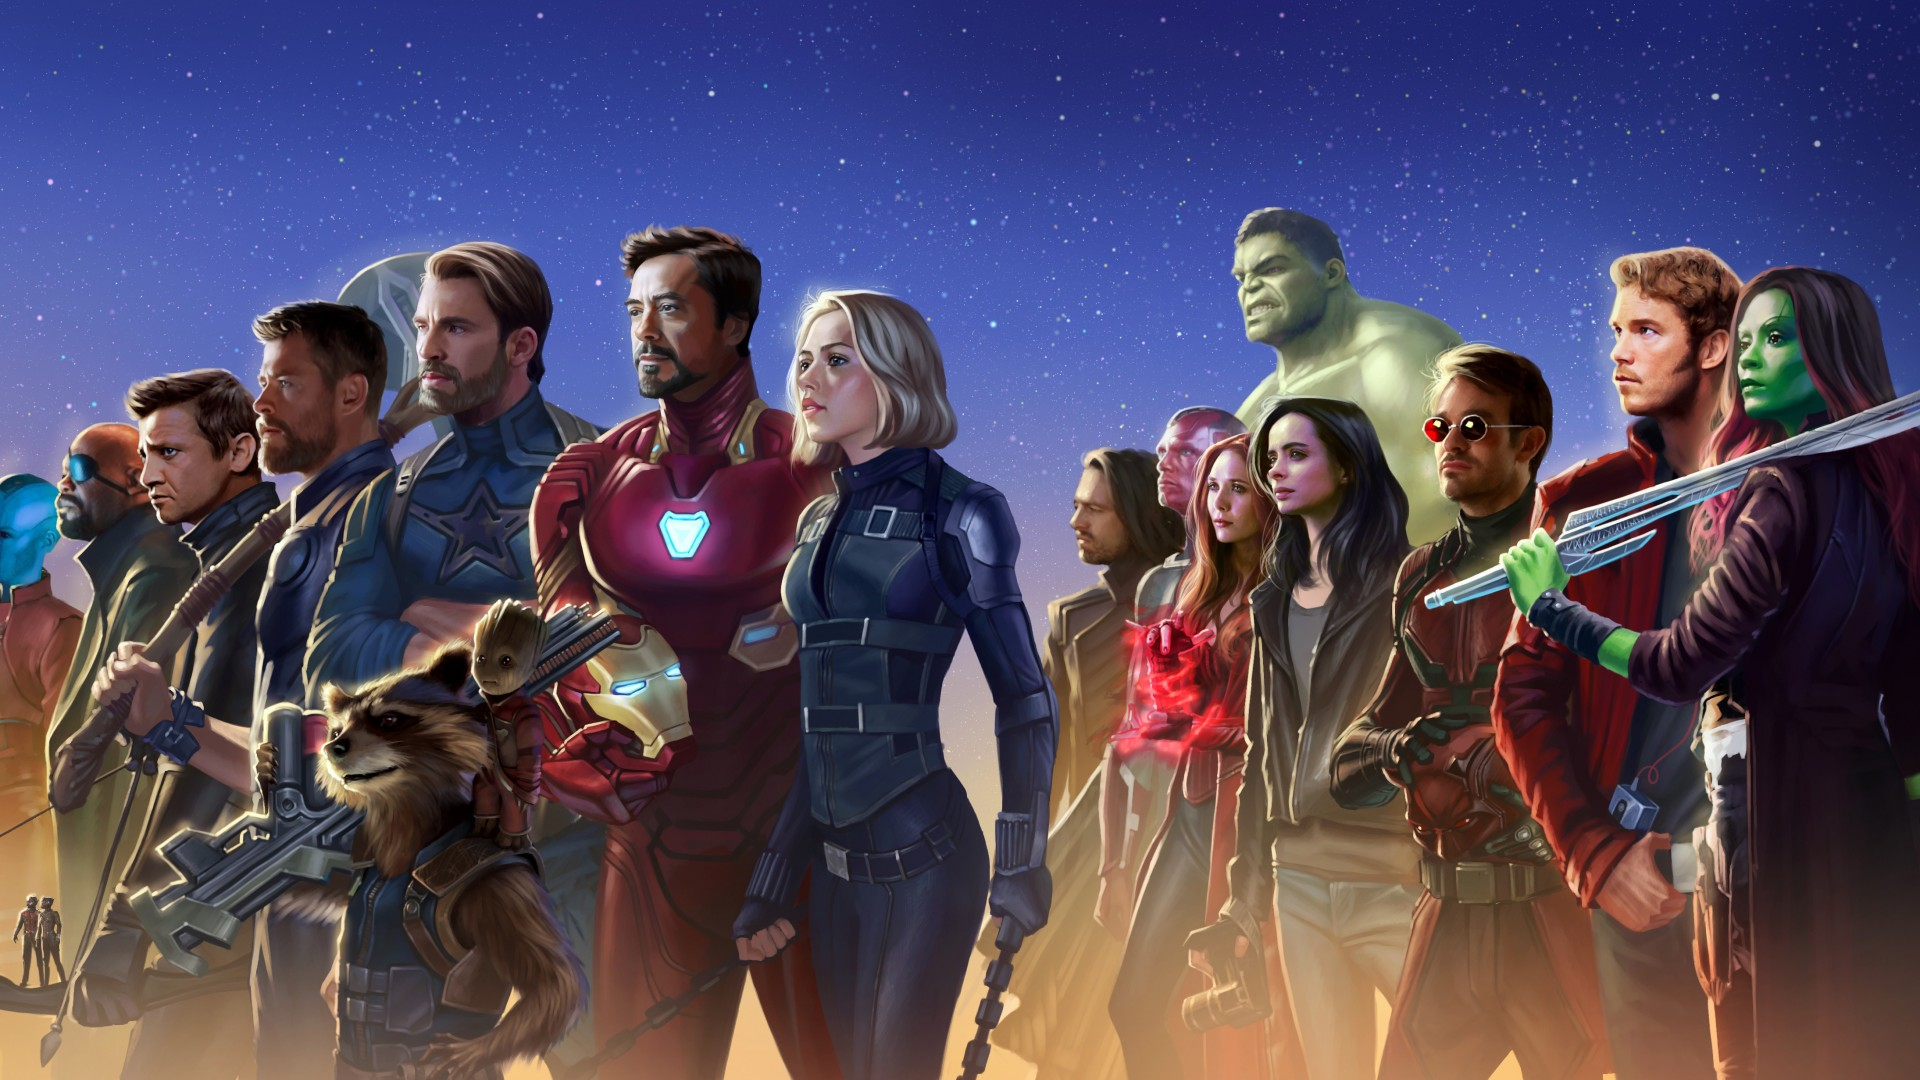 Avengers Infinity War 4k 5k 1920x1080 1080p Wallpaper The Hot Desktop Wallpapers And Backgrounds For Your Pc And Mobile